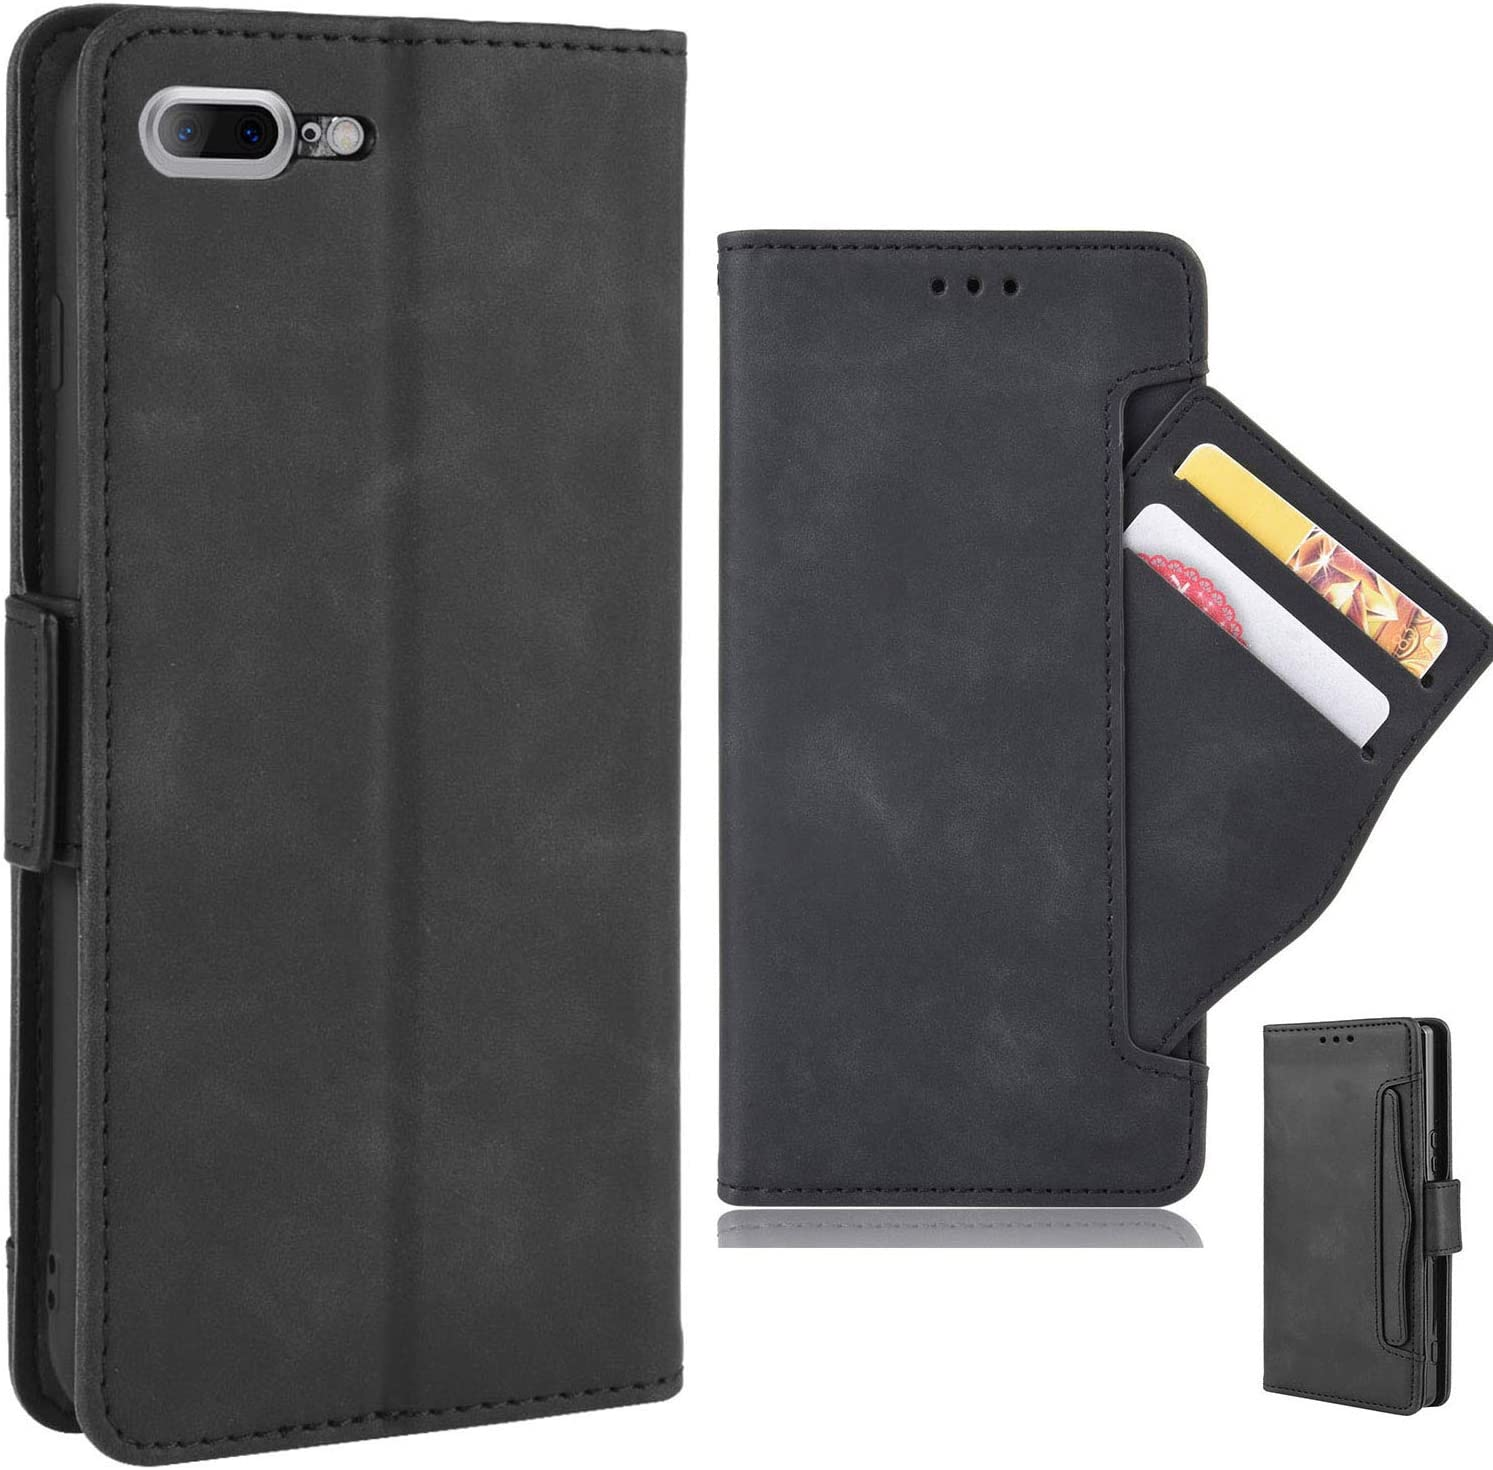 iPhone 7 8 Plus PU Leather Kickstand Wallet Phone Case, Flip Magnetic Cover with Card Slot and Removable Card Holder (5 Colors, Black)